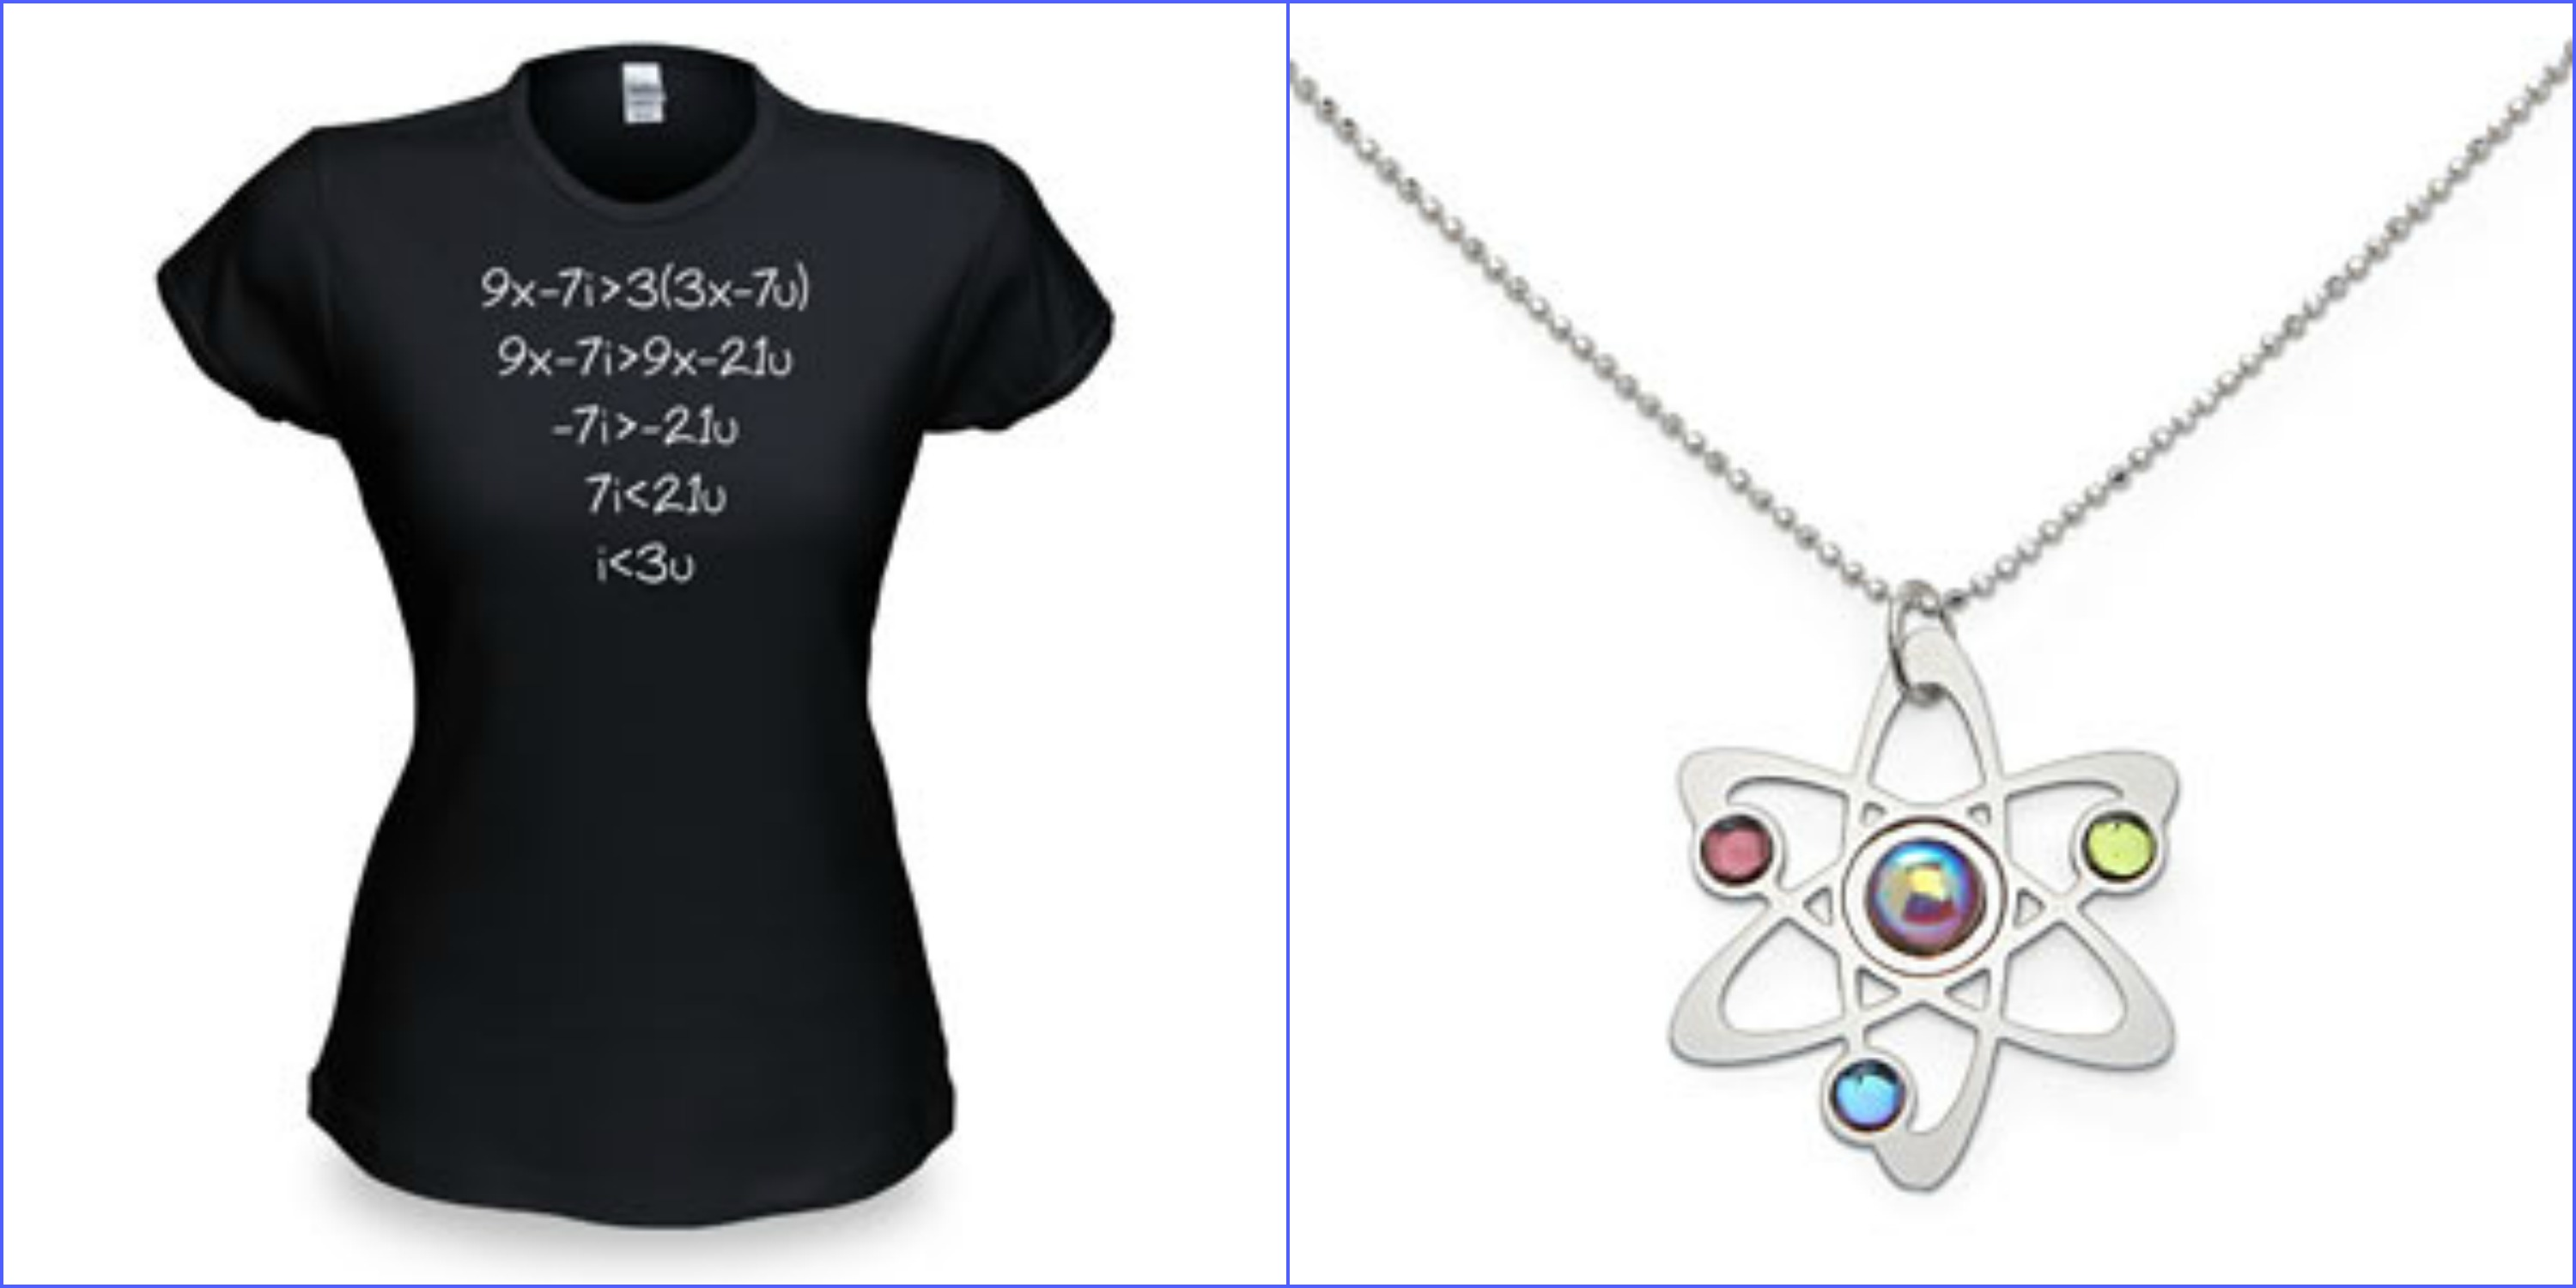 Mother's Day Gift Ideas for Geek Moms - Awkward Geeks